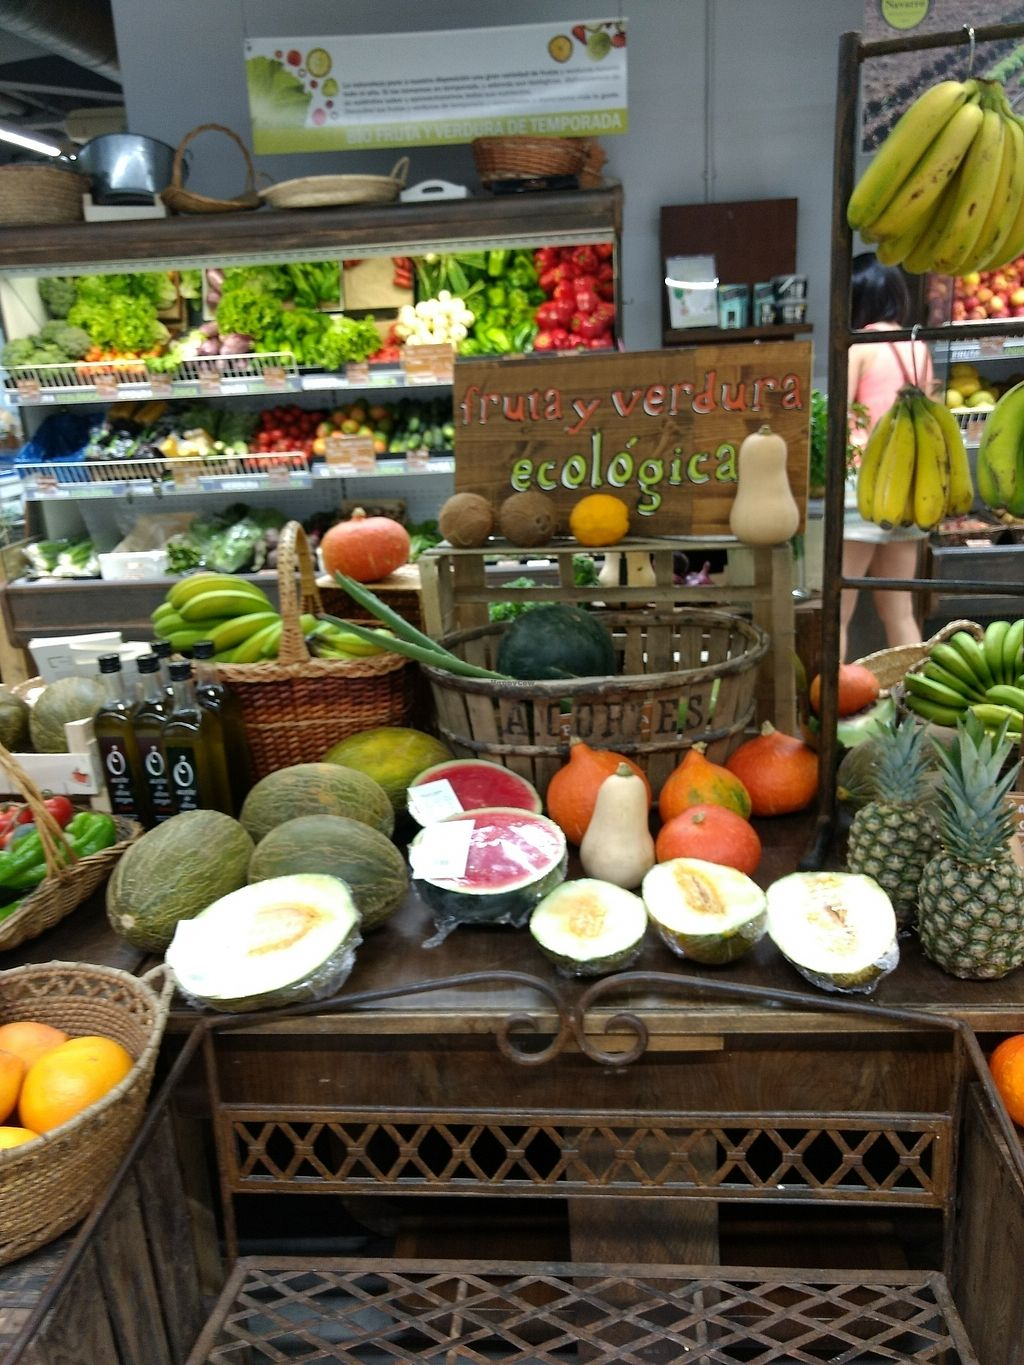 """Photo of Herbolario Navarro - San Vicente  by <a href=""""/members/profile/craigmc"""">craigmc</a> <br/>organic fruit and veg <br/> July 11, 2017  - <a href='/contact/abuse/image/65440/279210'>Report</a>"""